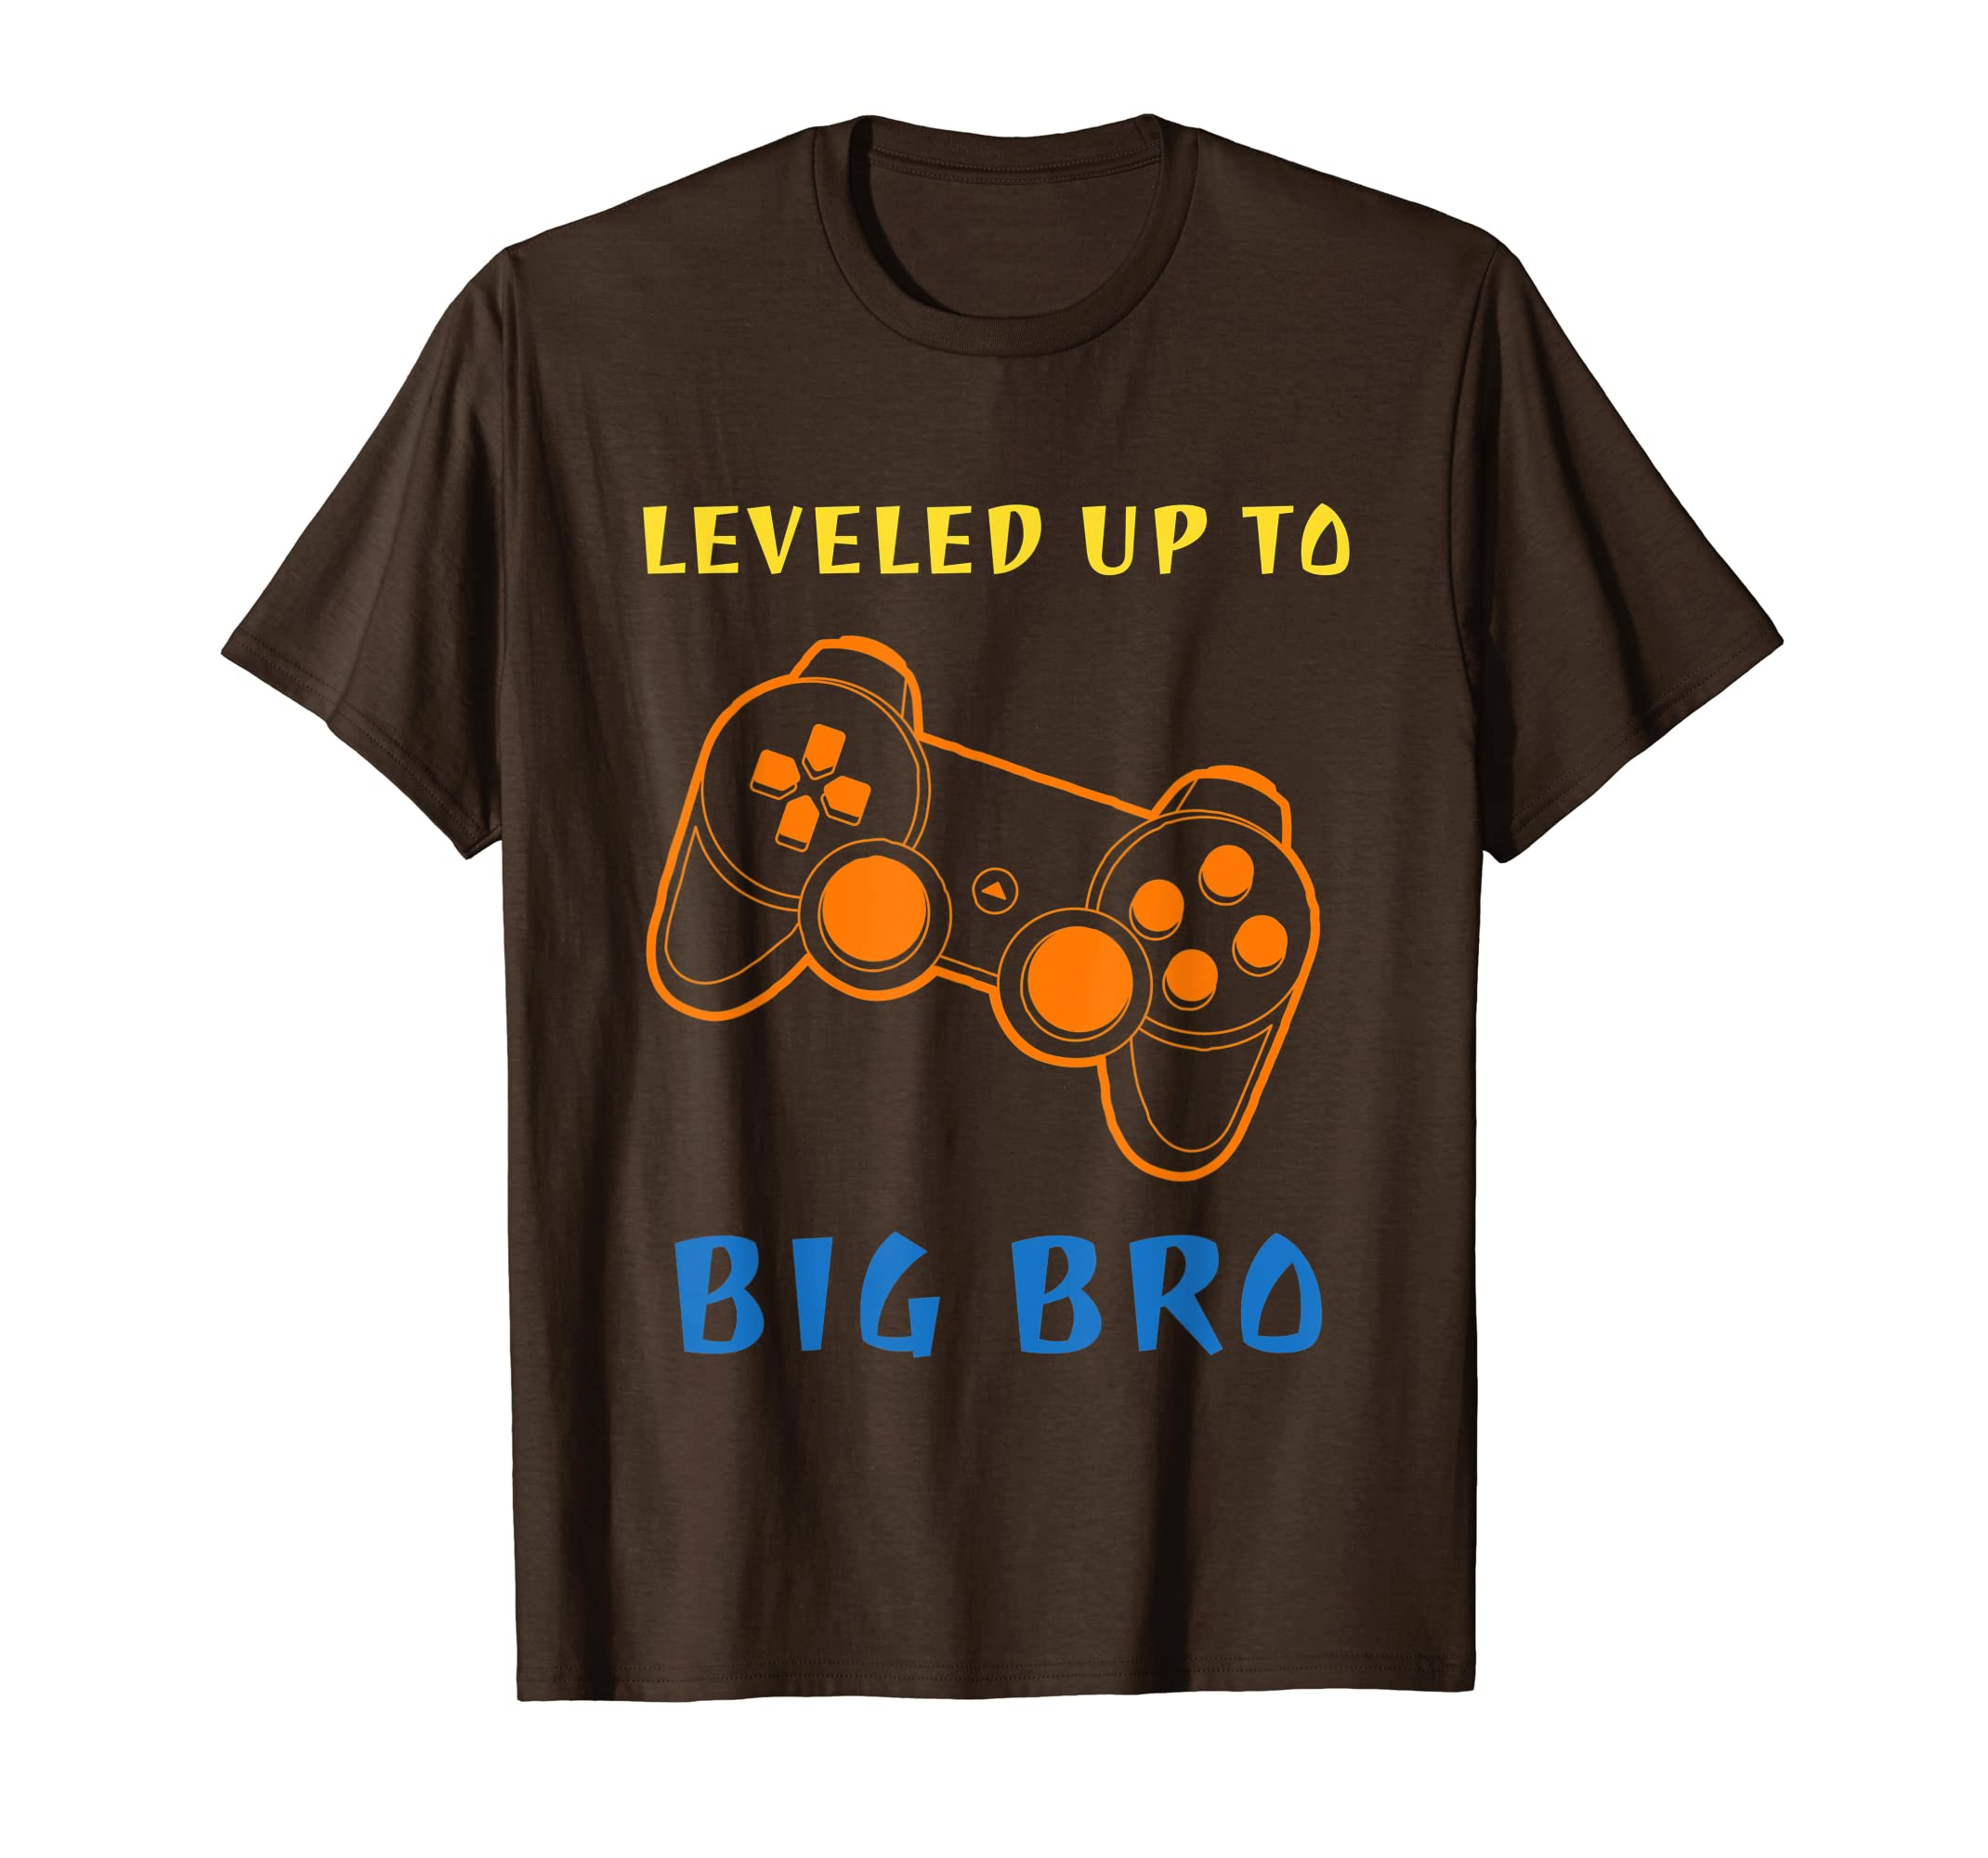 Leveled Up To Big Bro T Shirt Brother Gift For Gamer Pajama-Yolotee